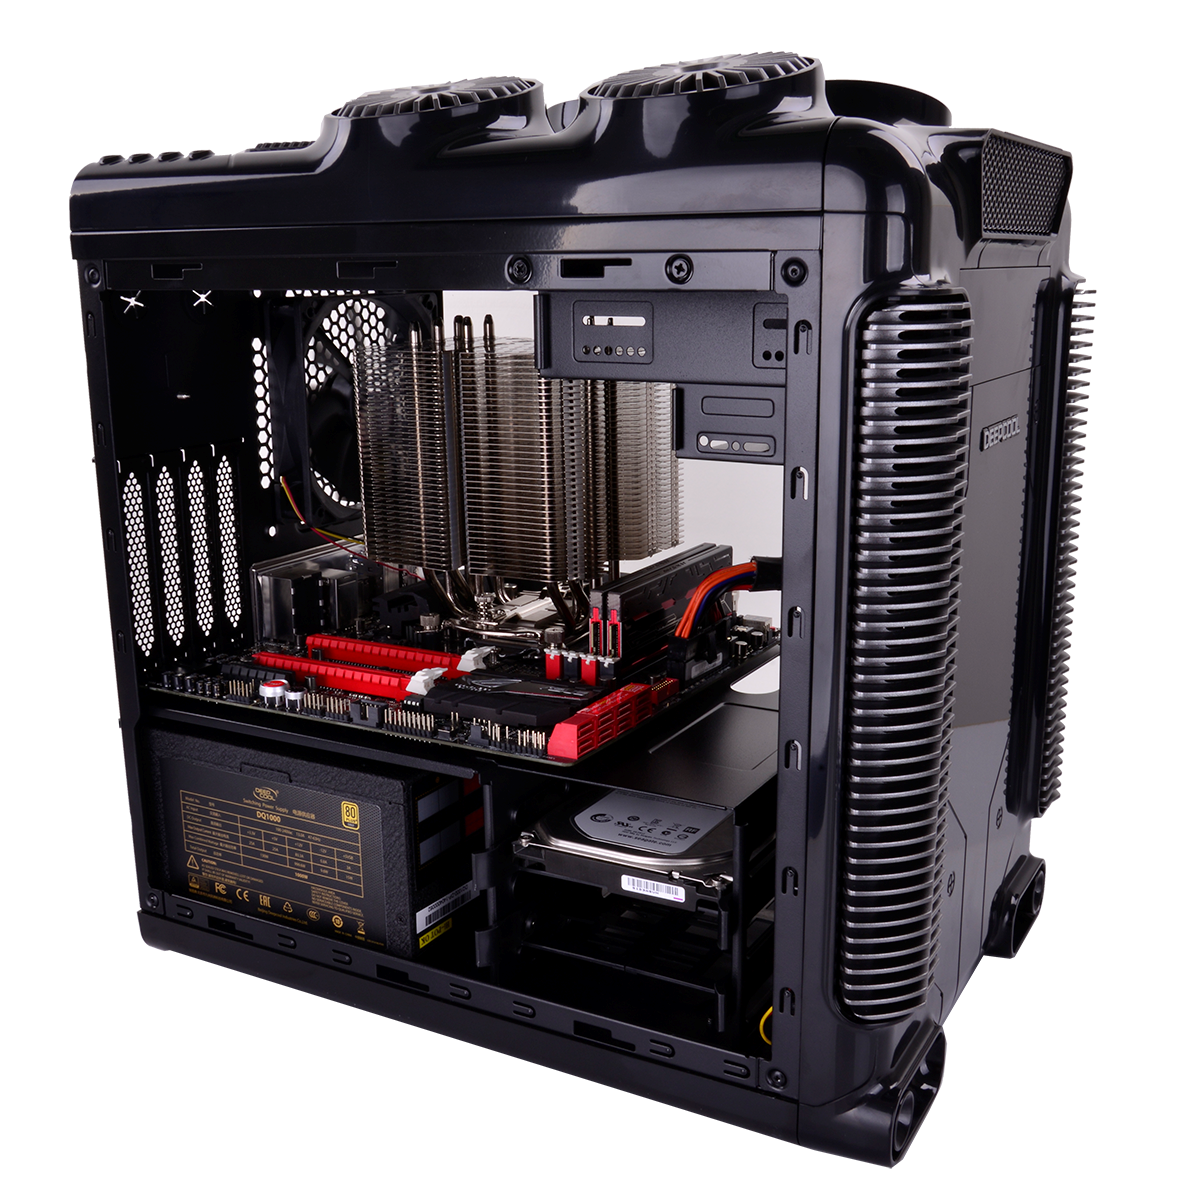 Deepcool Releases Steam Castle Matx Steam Punk Themed Case